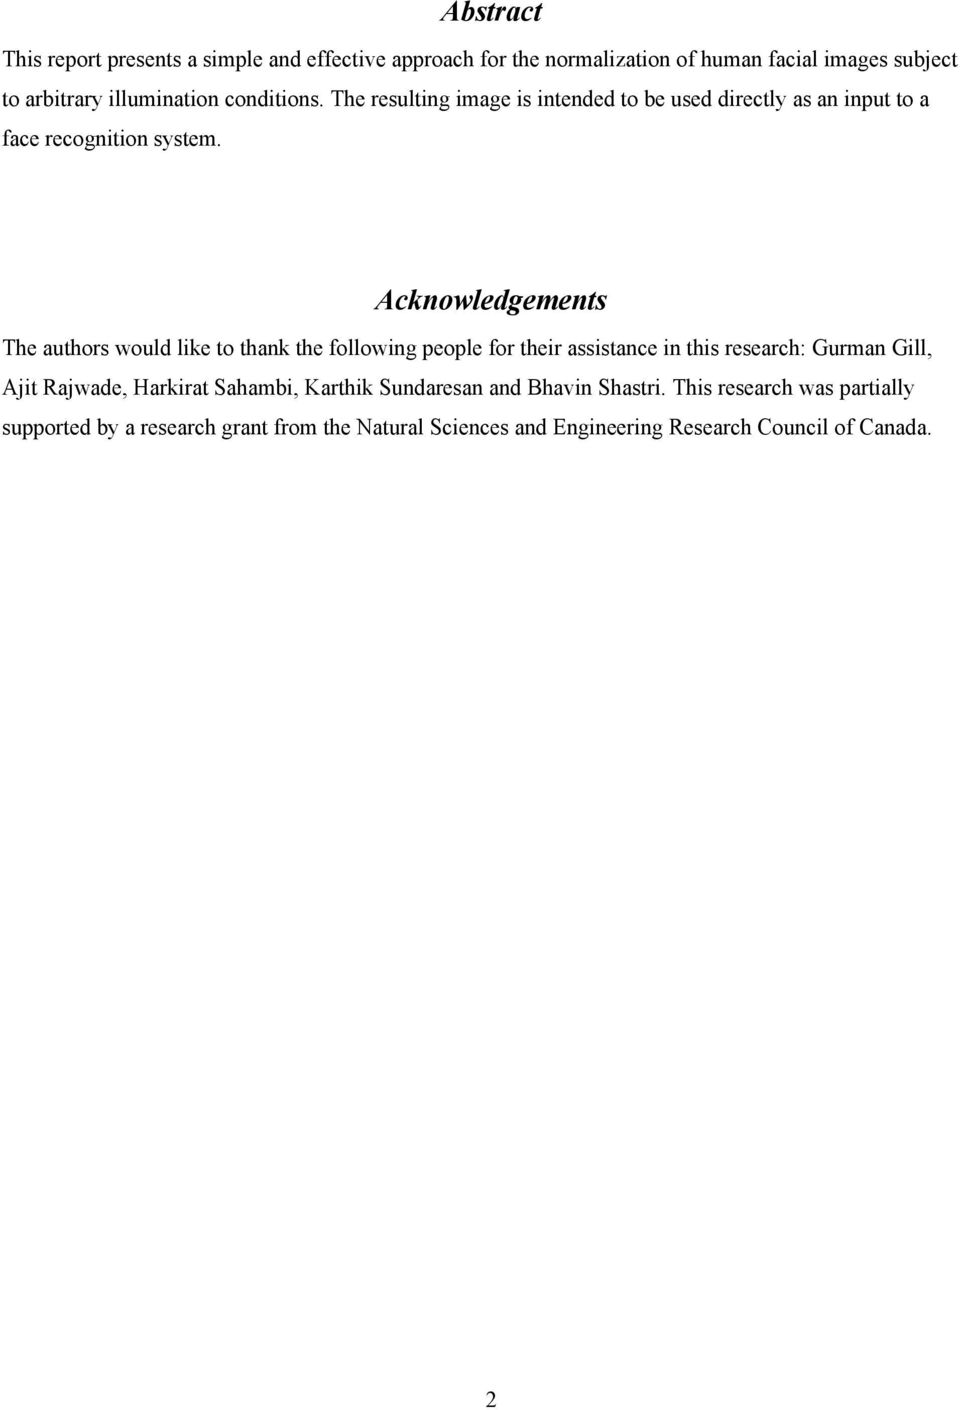 Acknowledgements The authors would like to thank the following people for their assistance in this research: Gurman Gill, Ajit Rajwade,